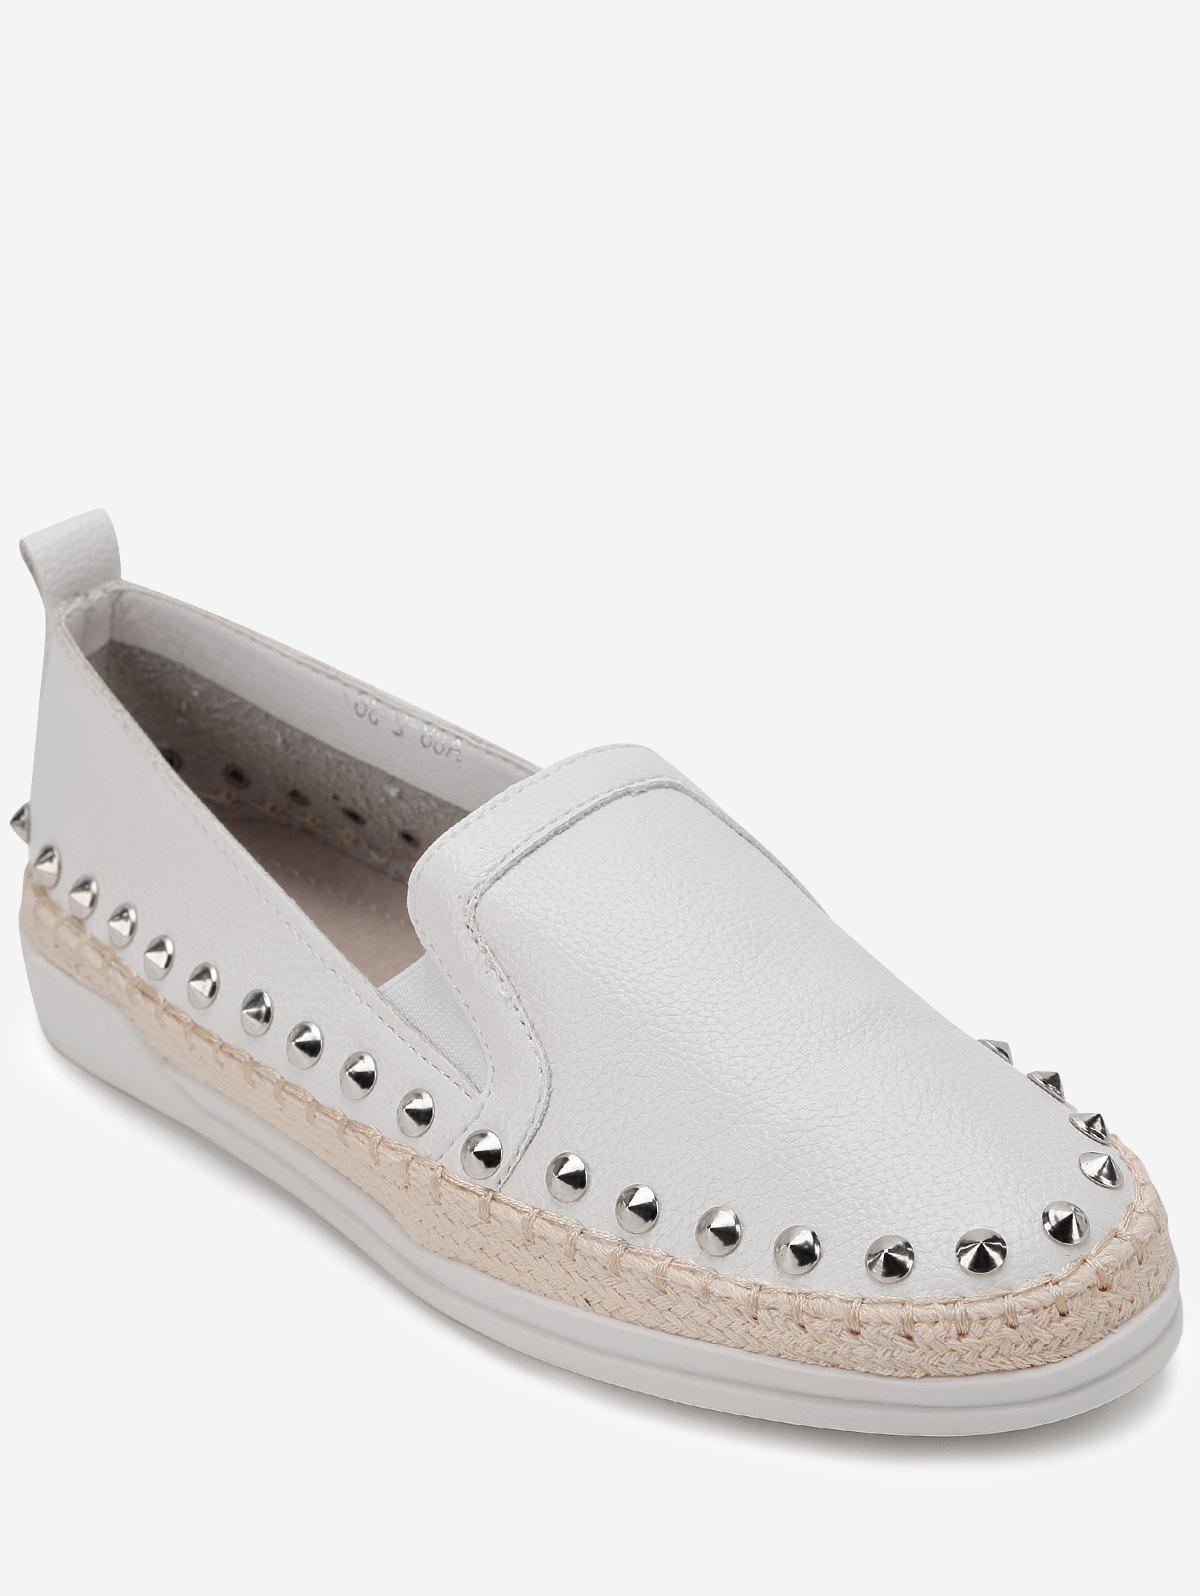 Best Rivet Trim Slip-on Espadrille Casual Sneakers